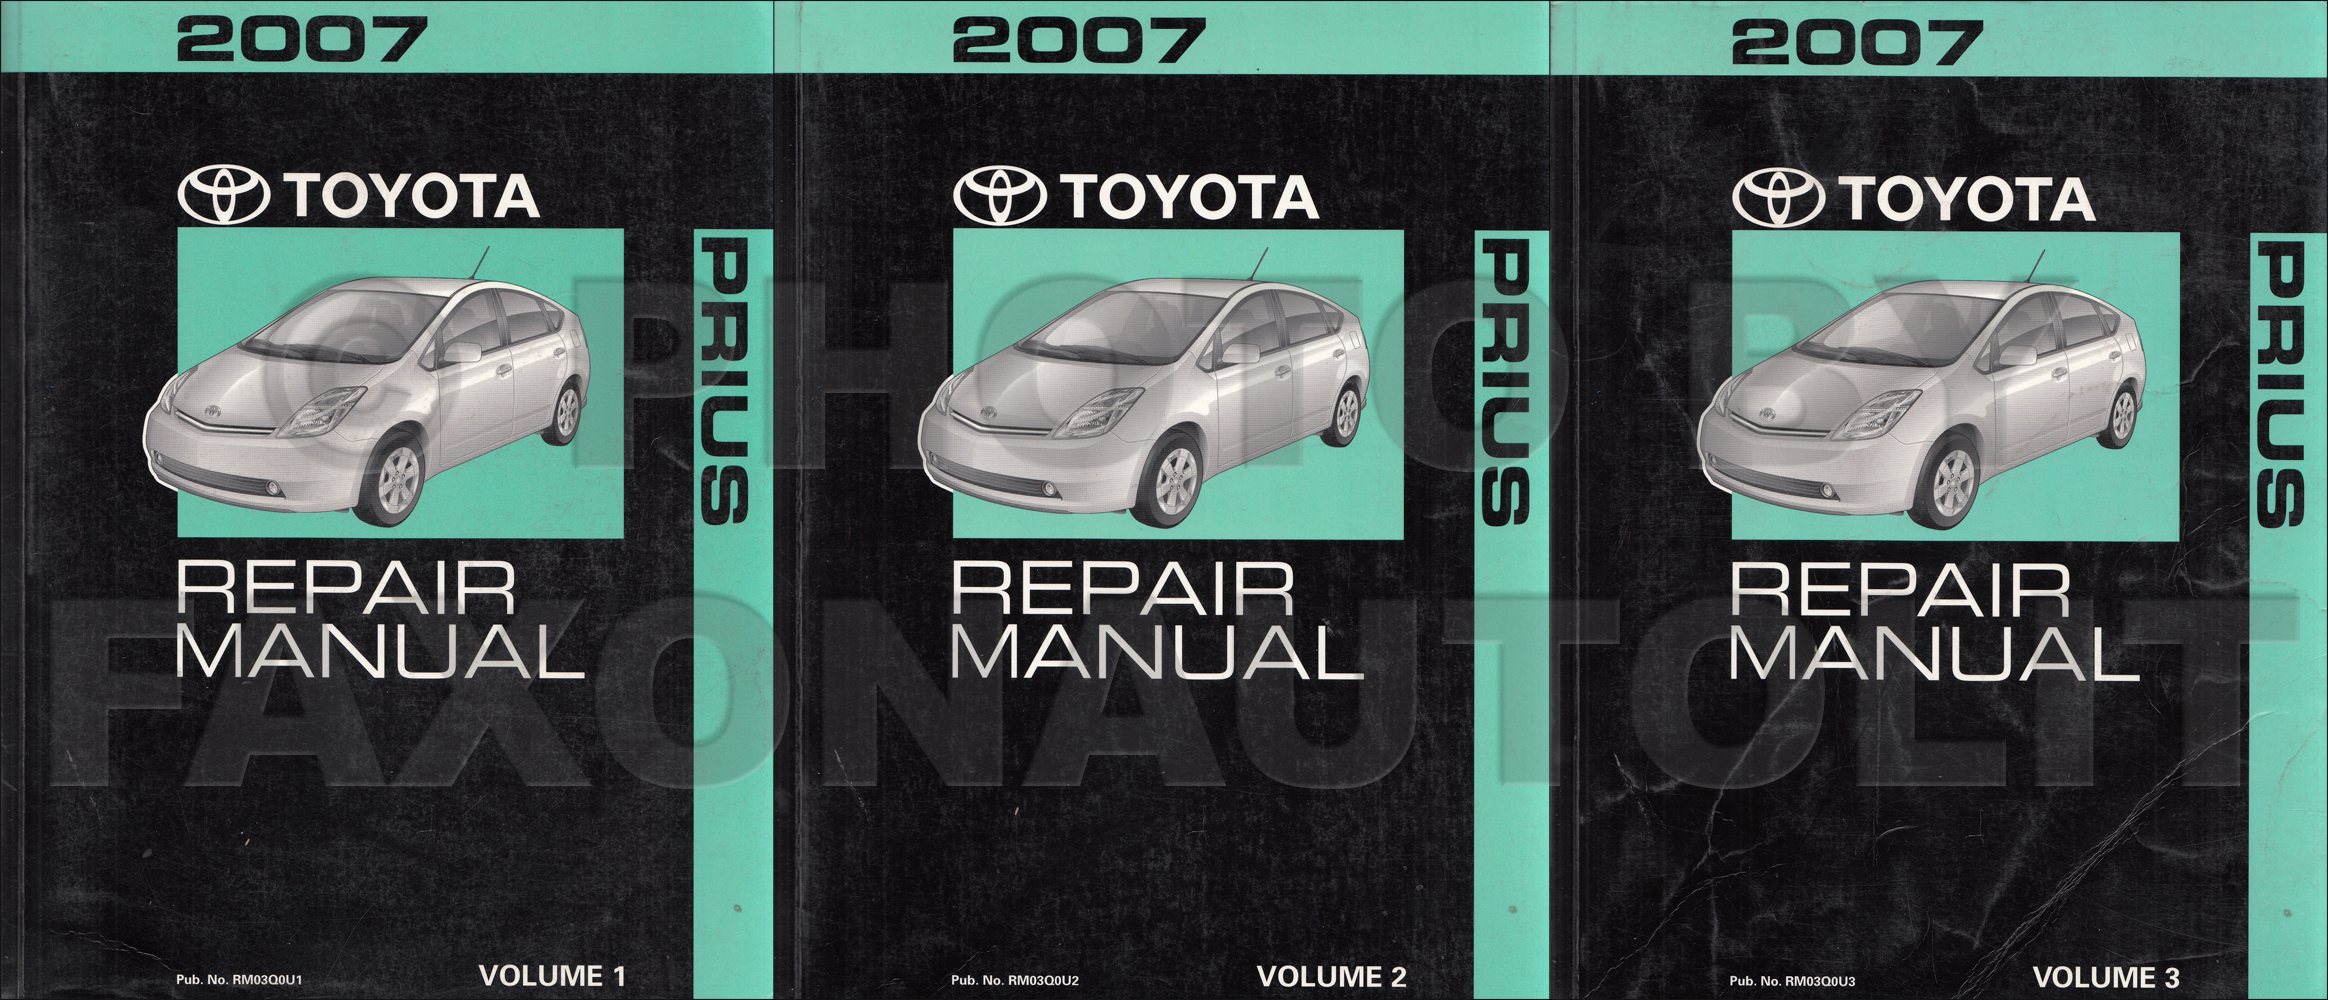 2003 Toyota Prius Wiring Diagram Manual Original 2007 Engine Search Rh Faxonautoliterature Com 82 Pickup